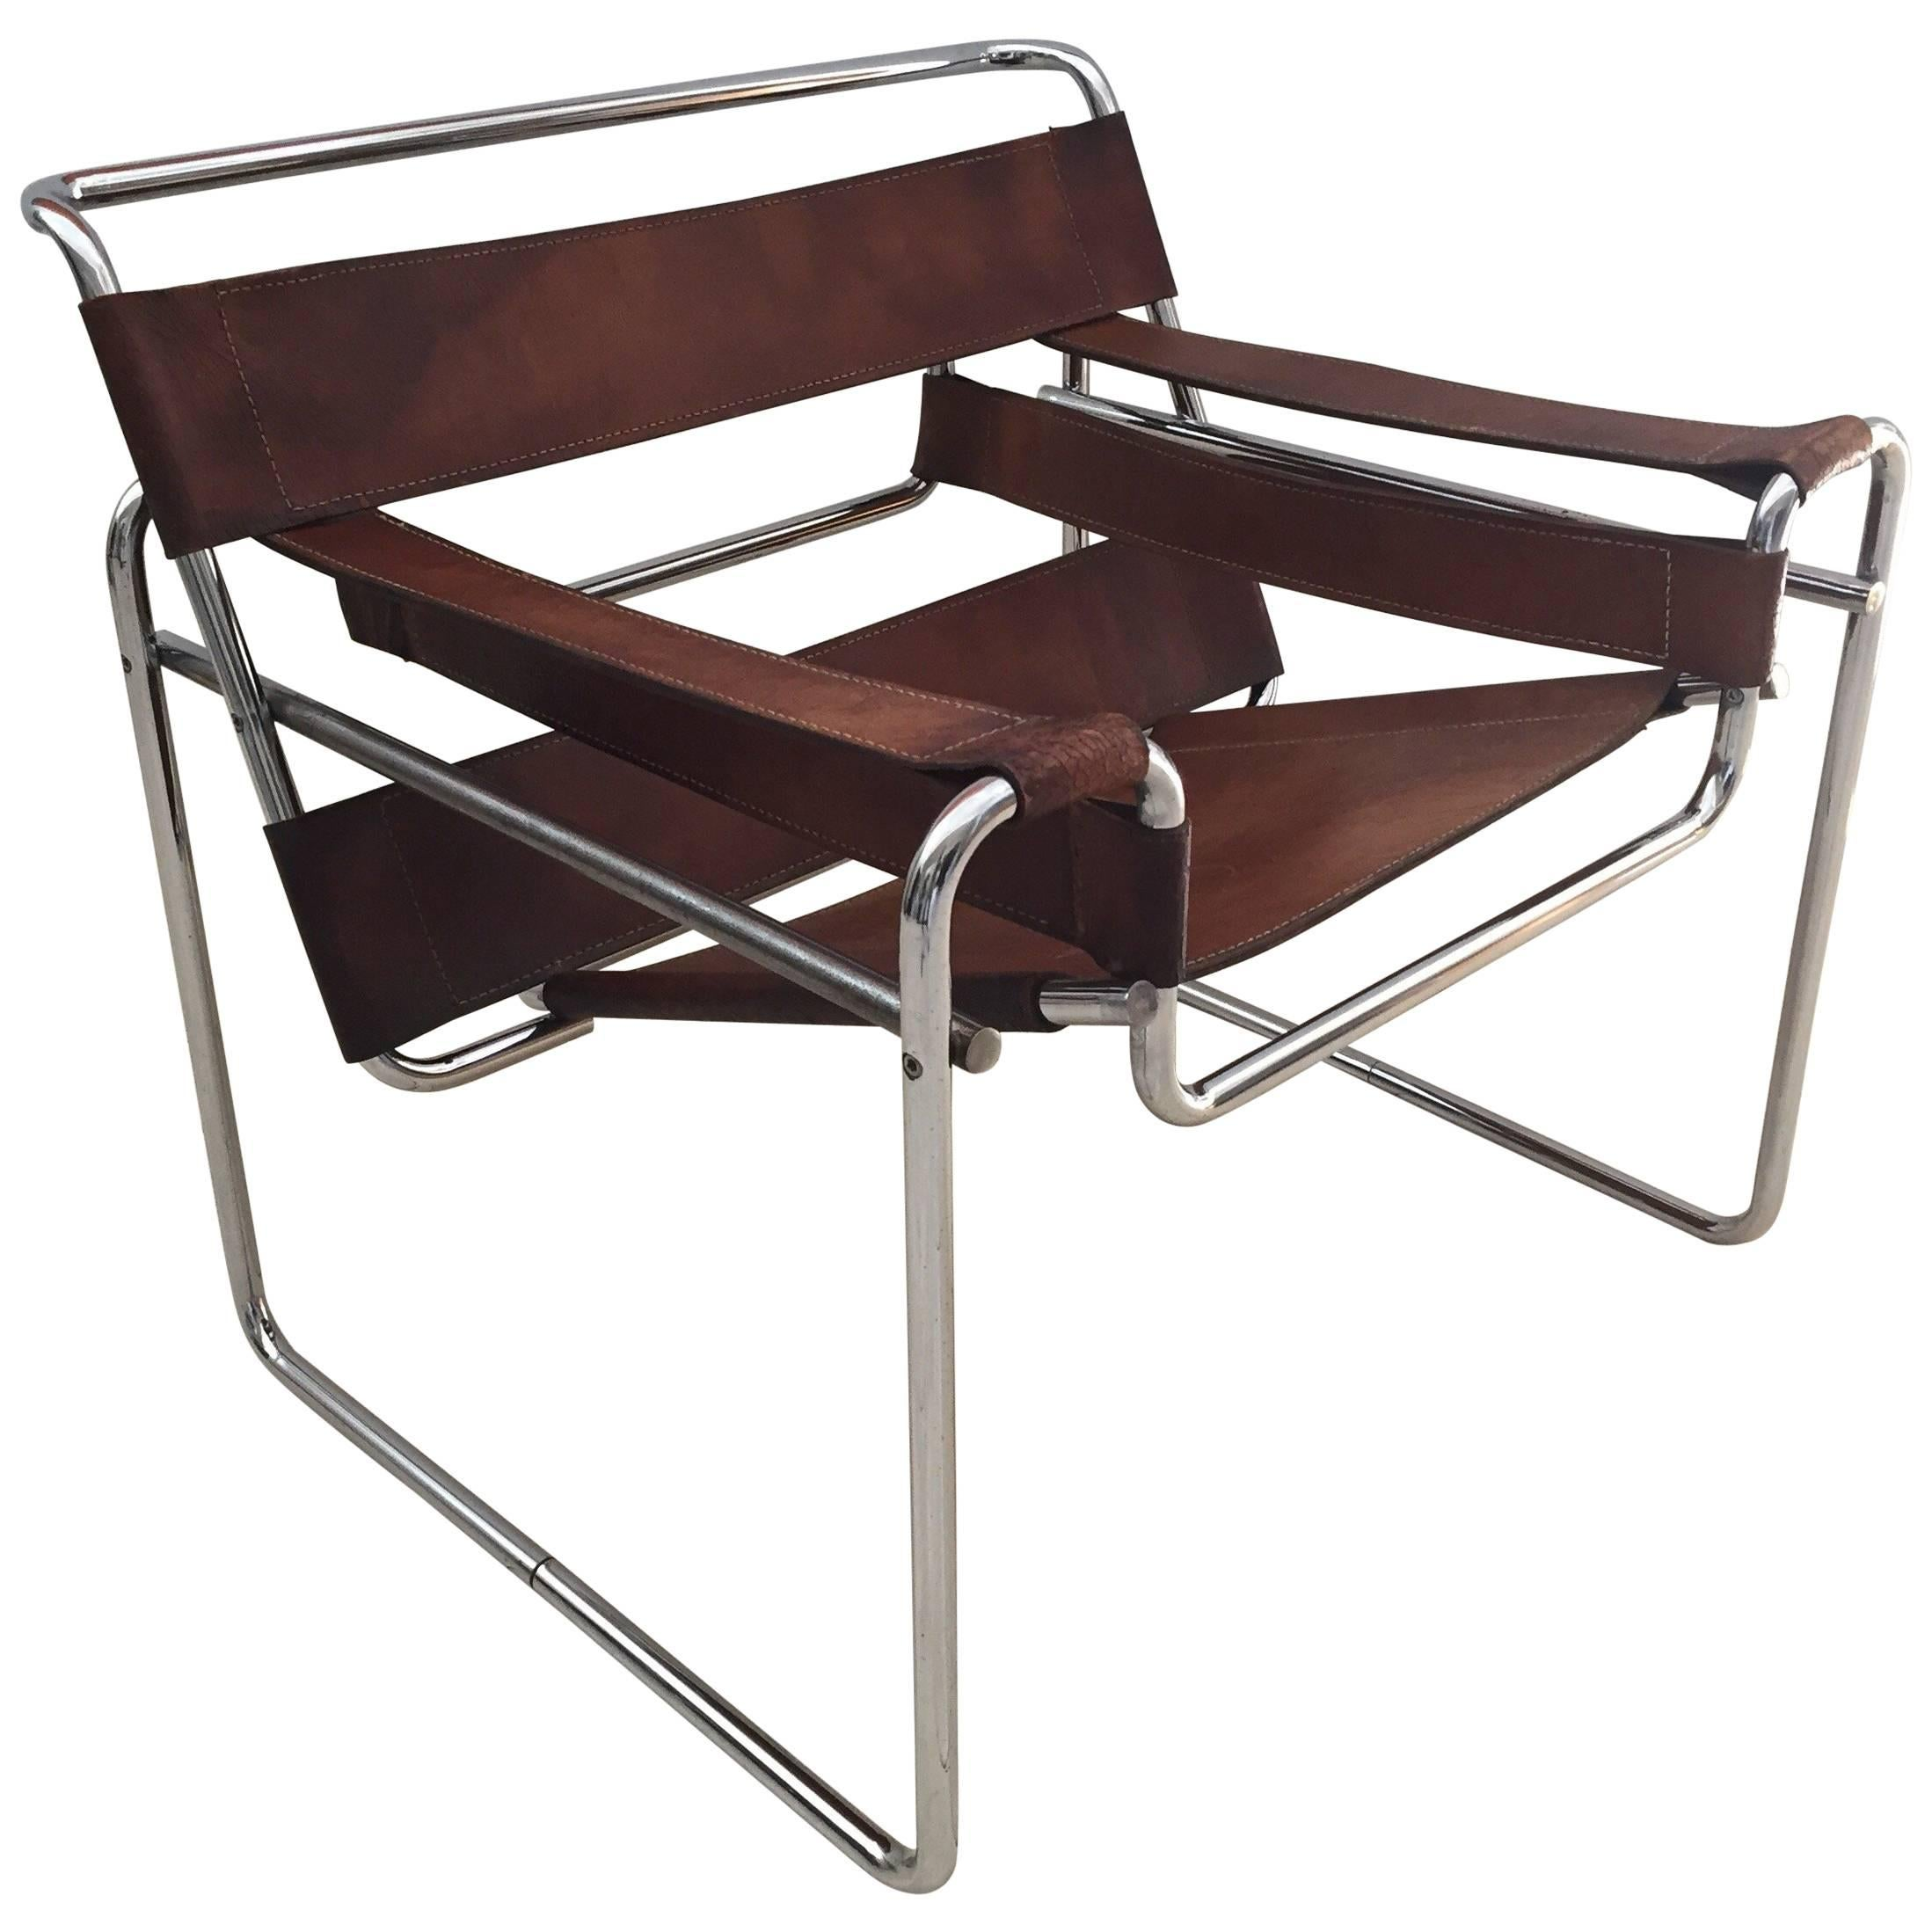 Vintage Early Original Marcel Breuer Wassily Chair For Knoll In Brown  Leather For Sale At 1stdibs